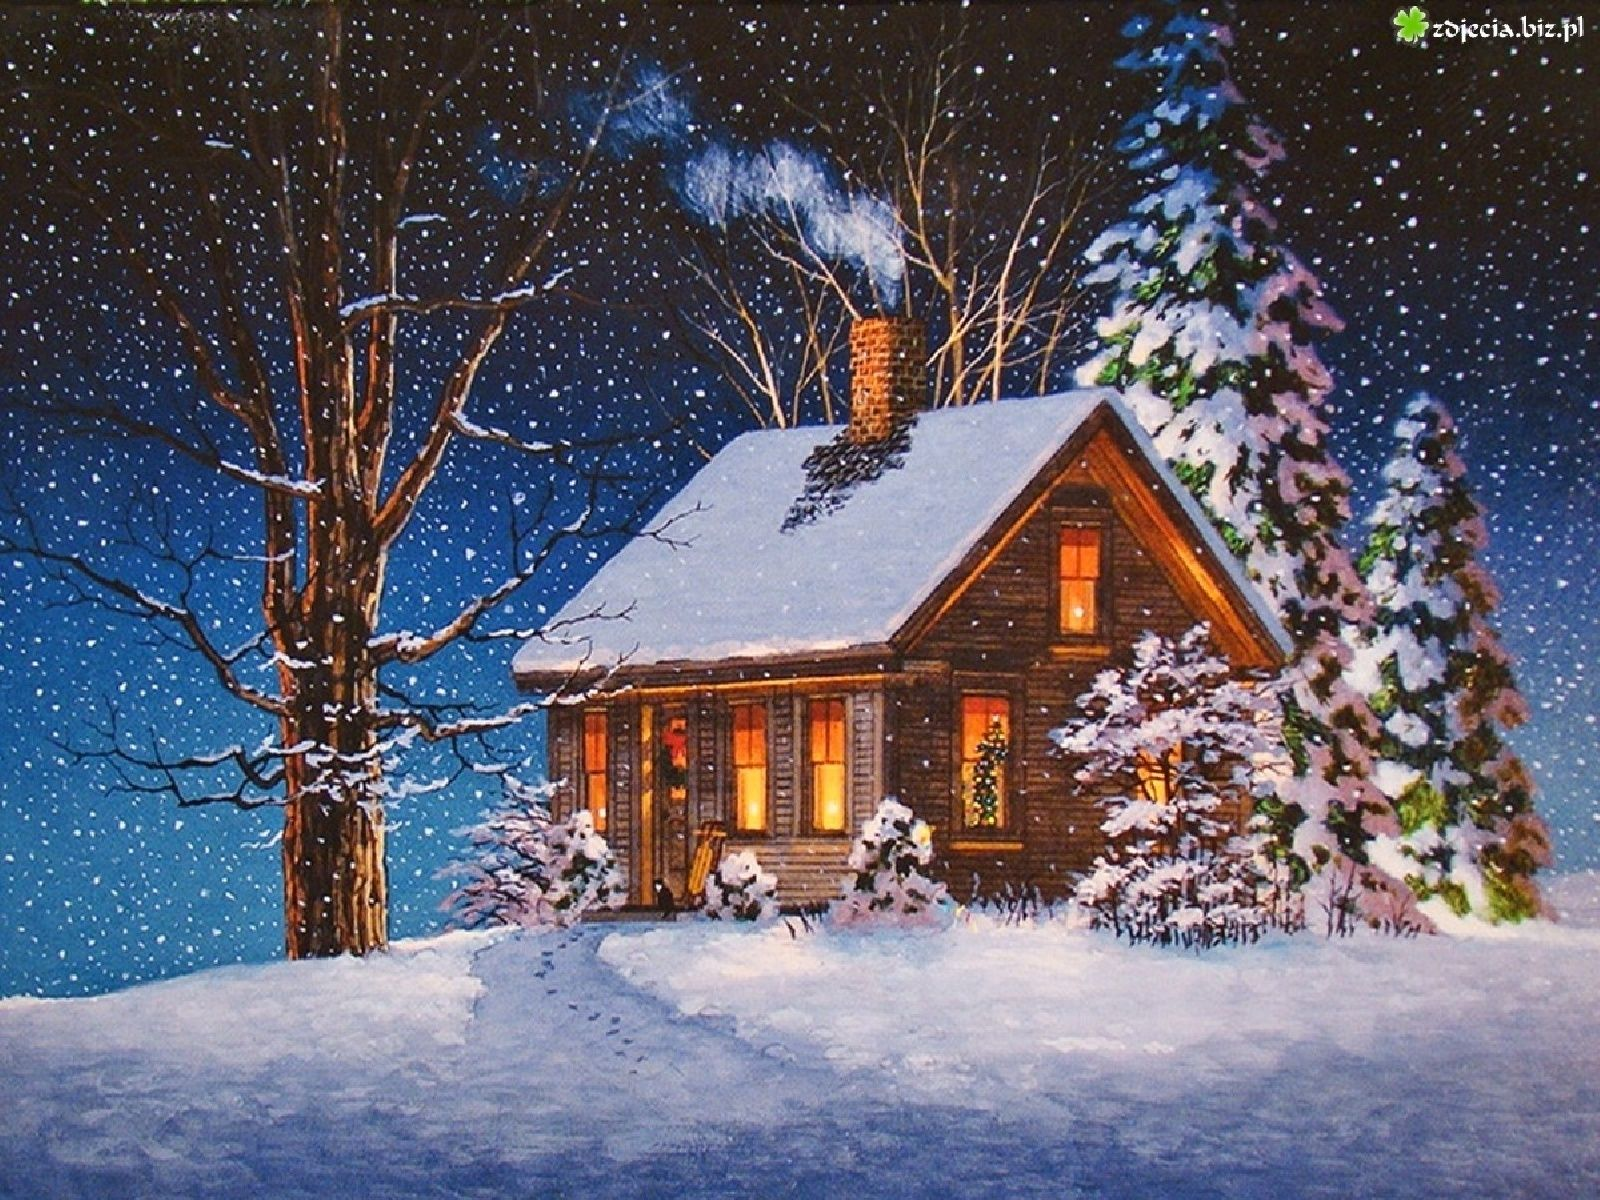 242 best Winter images on Pinterest | Winter scenes, Winter and Snow